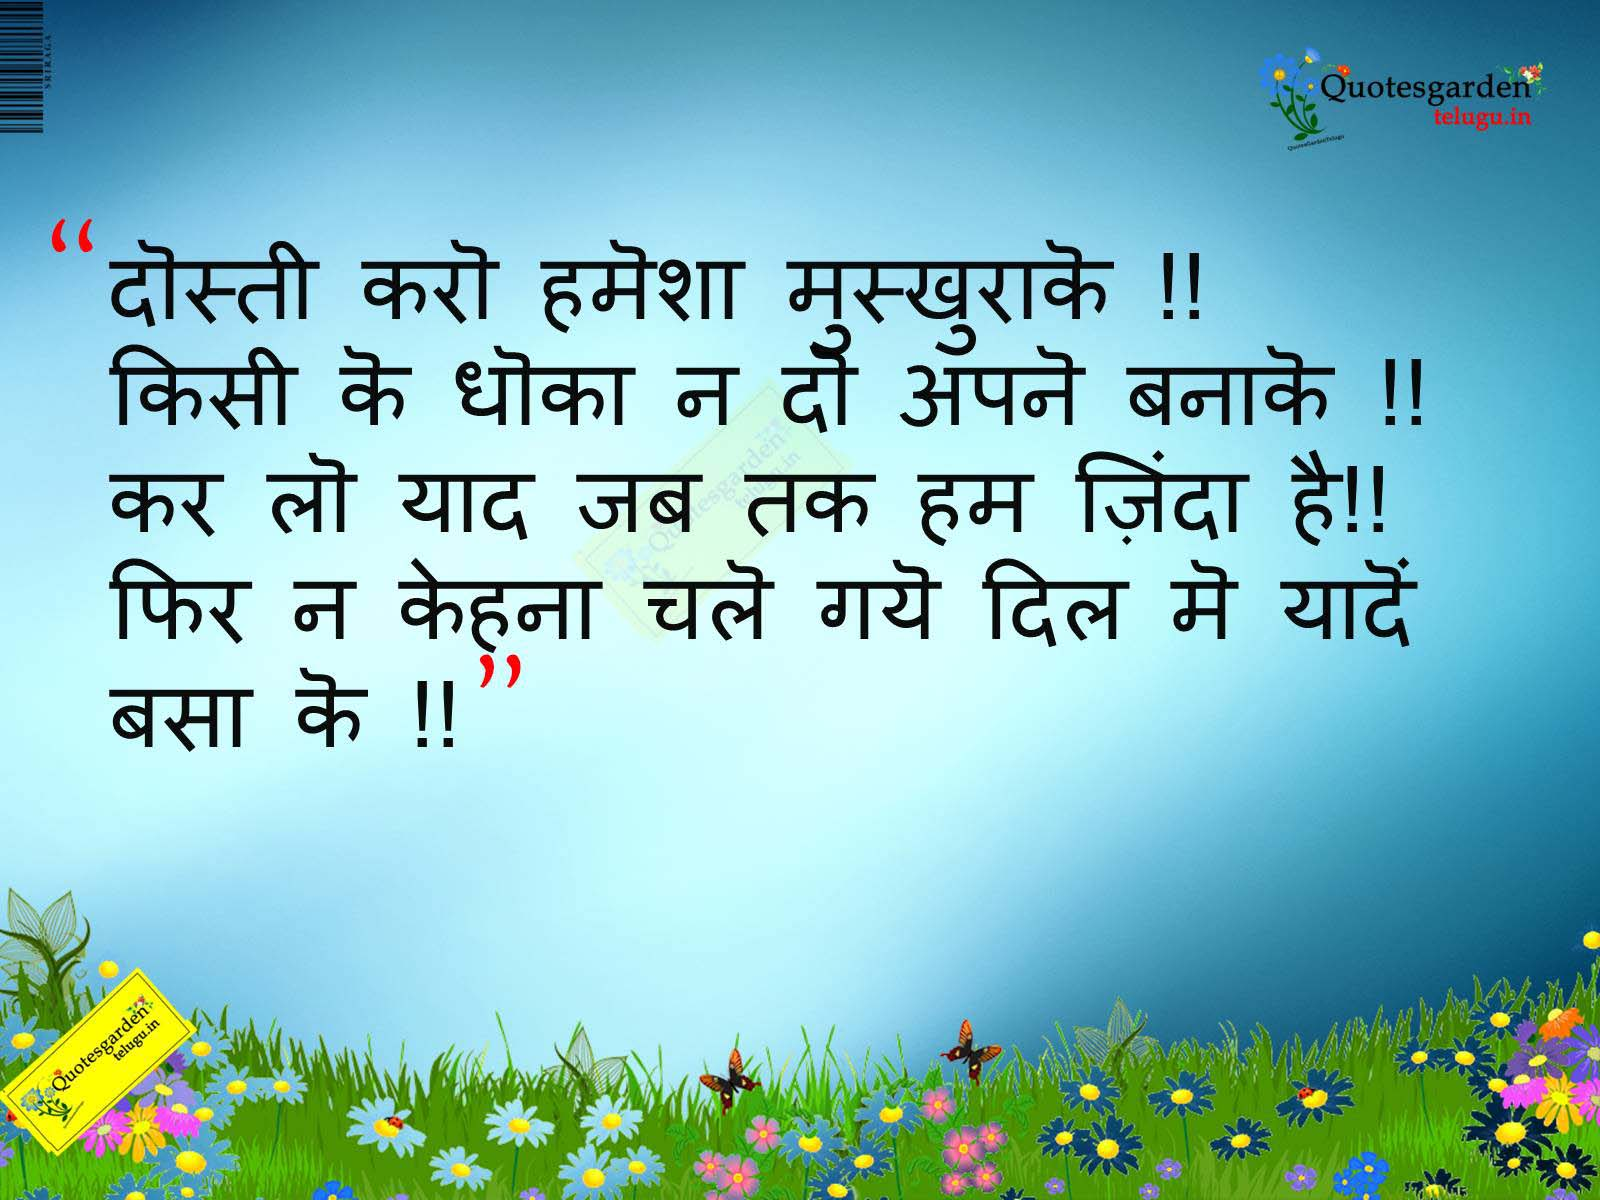 hindi inspirational quotes submited images